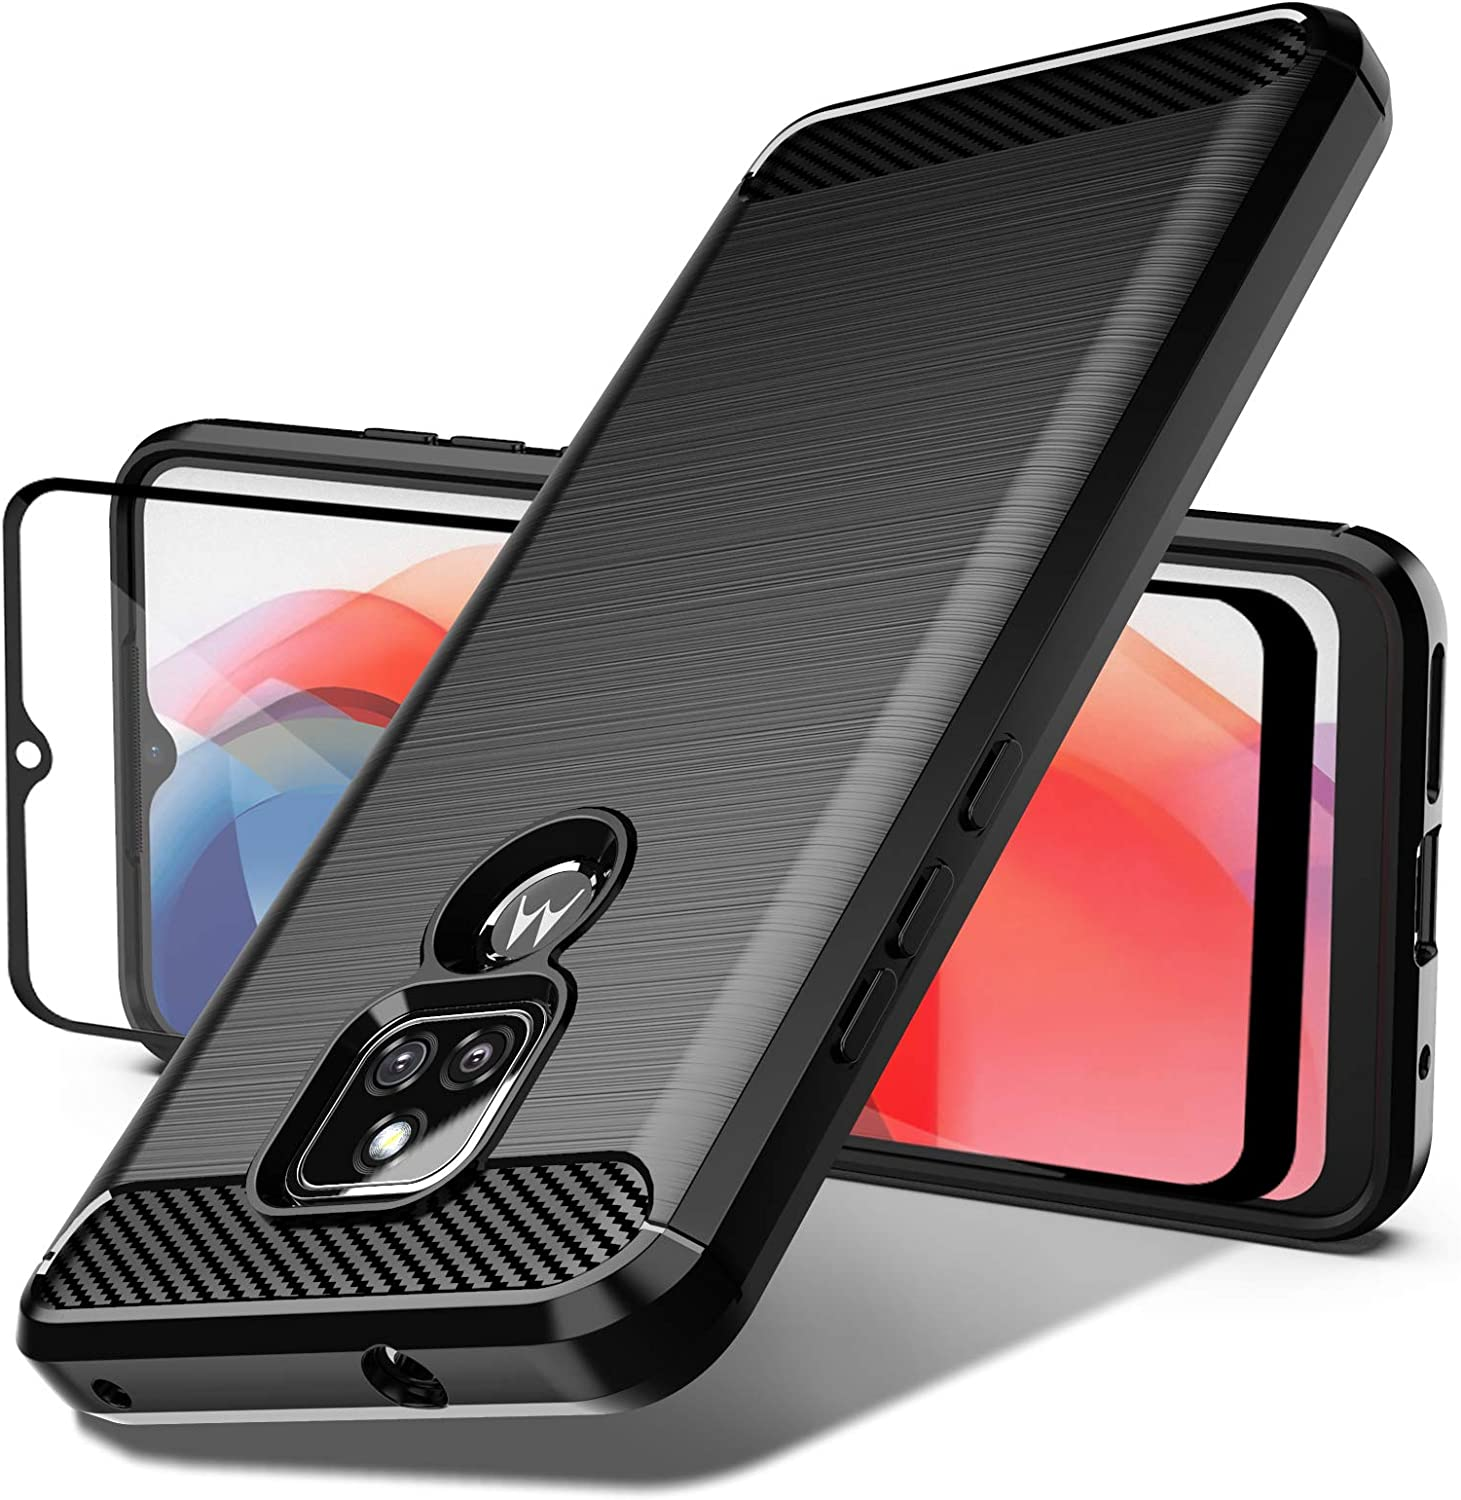 Dretal Moto G Play 2021 Case with Tempered Glass Screen Protector, Shock-Absorption Slim Fit Flexible TPU Case Brushed Texture Soft Rubber Protective Cover for Motorola Moto G Play 2021 (LS-Black)